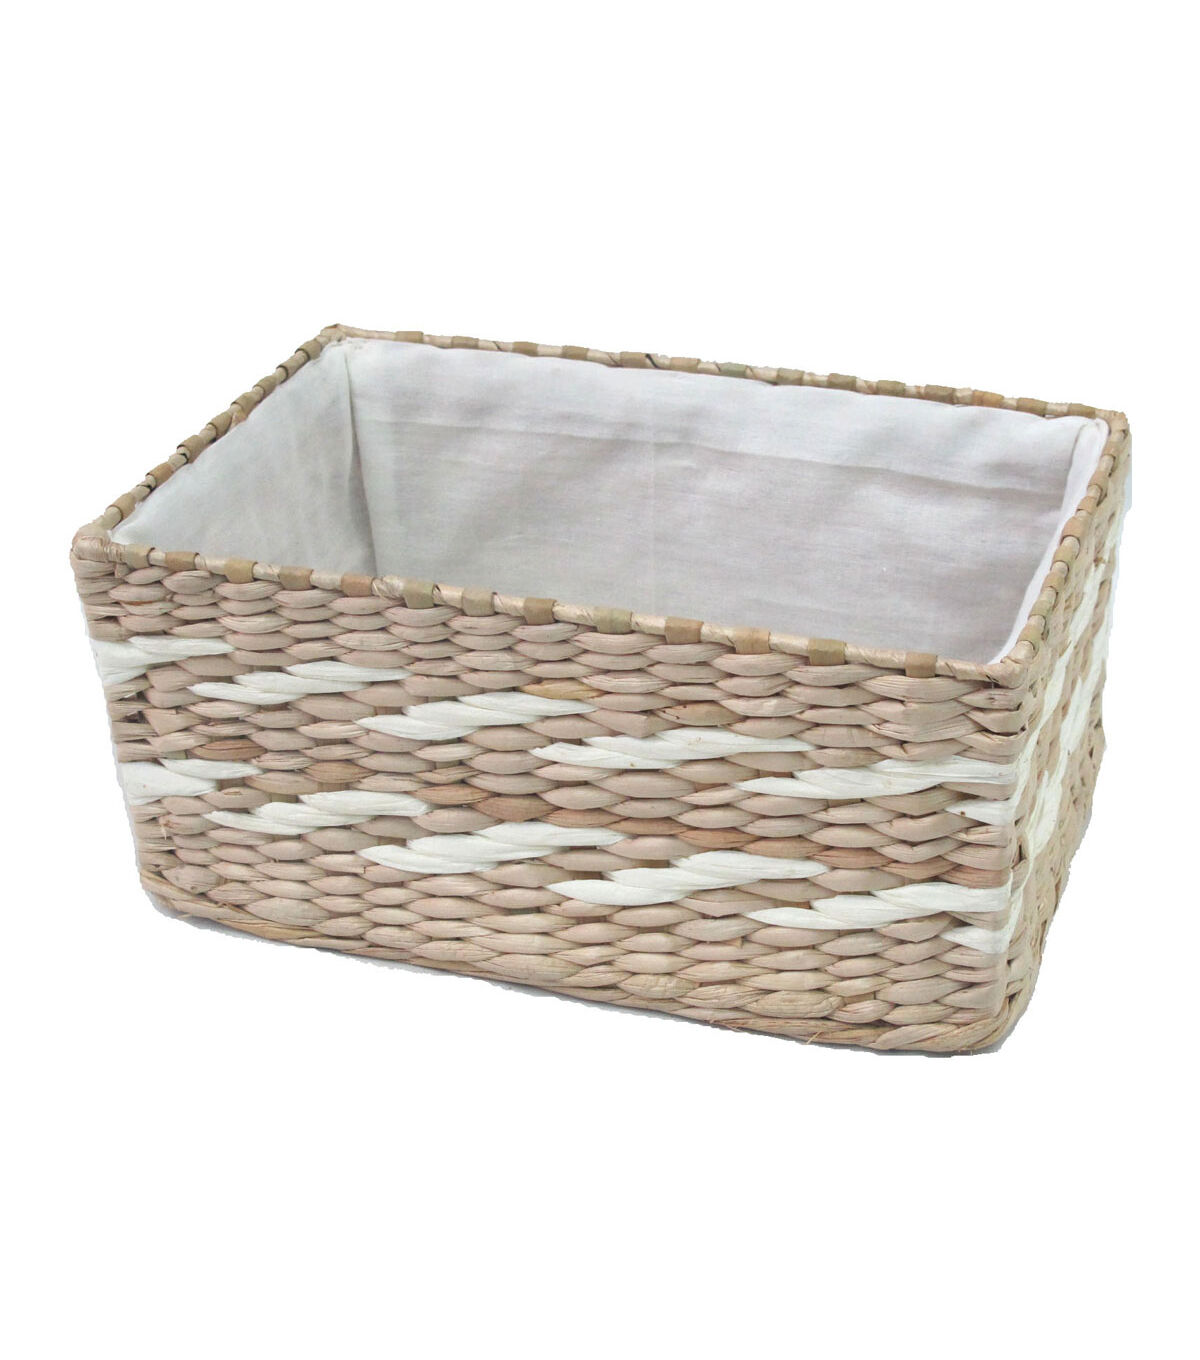 Organizing Essentials 11.75u0027u0027x7.75u0027u0027 Rush Basket With Metal Frame